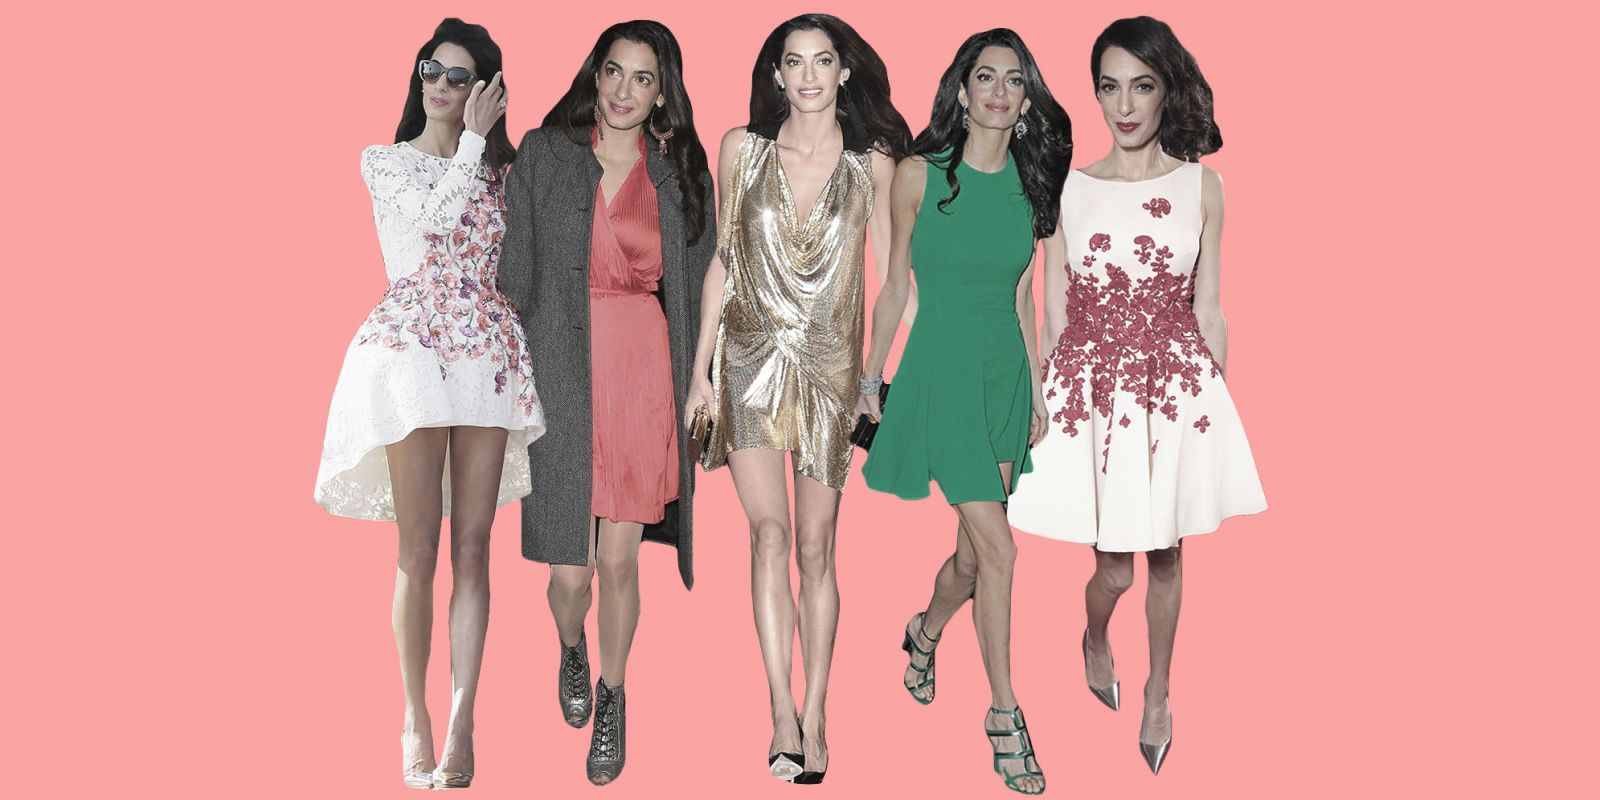 photo The Amal Clooney beauty look book